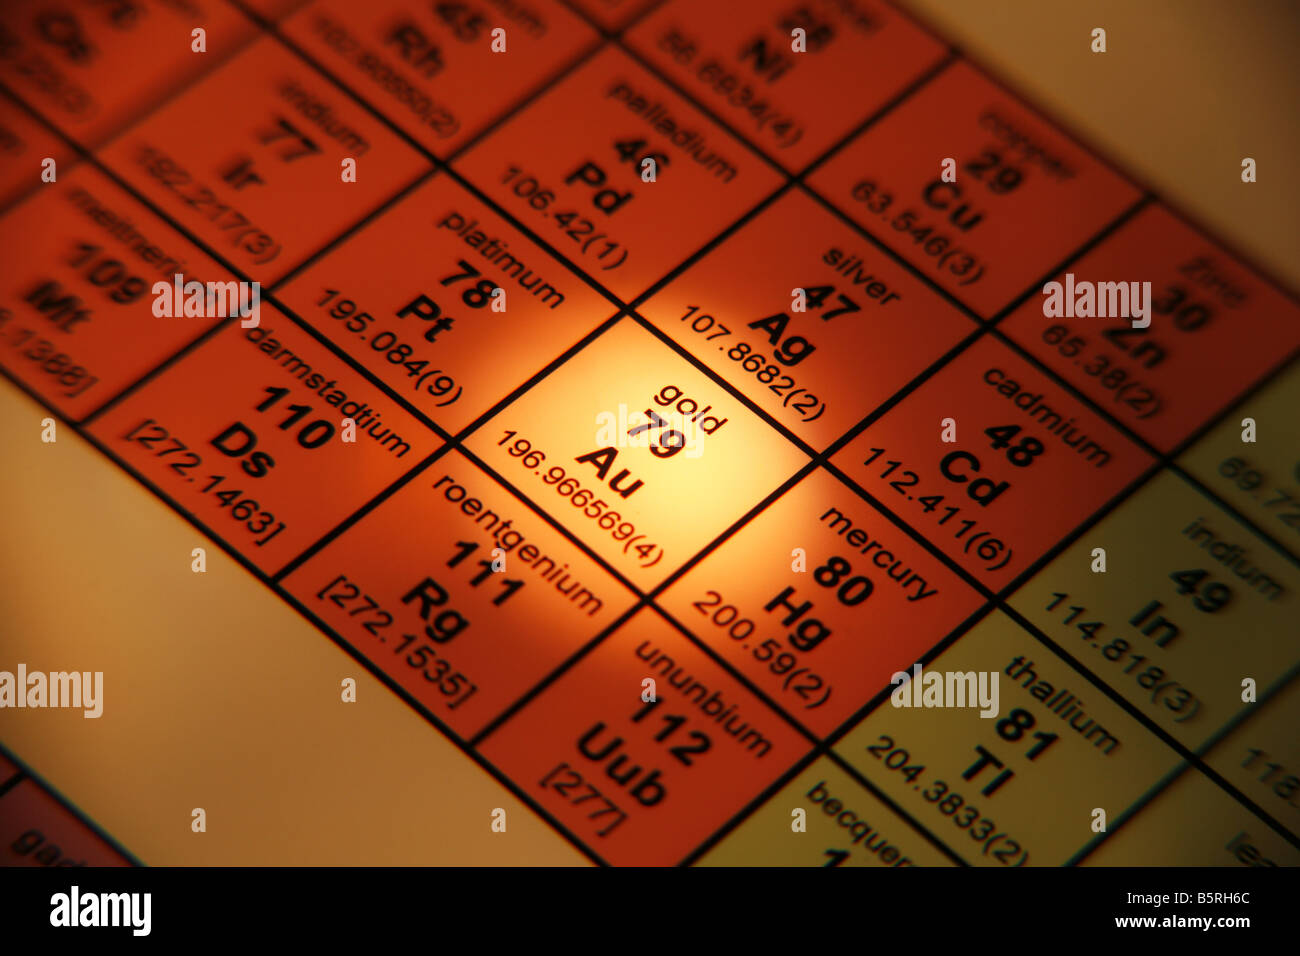 Periodic table of elements gold stock photo 20802052 alamy periodic table of elements gold urtaz